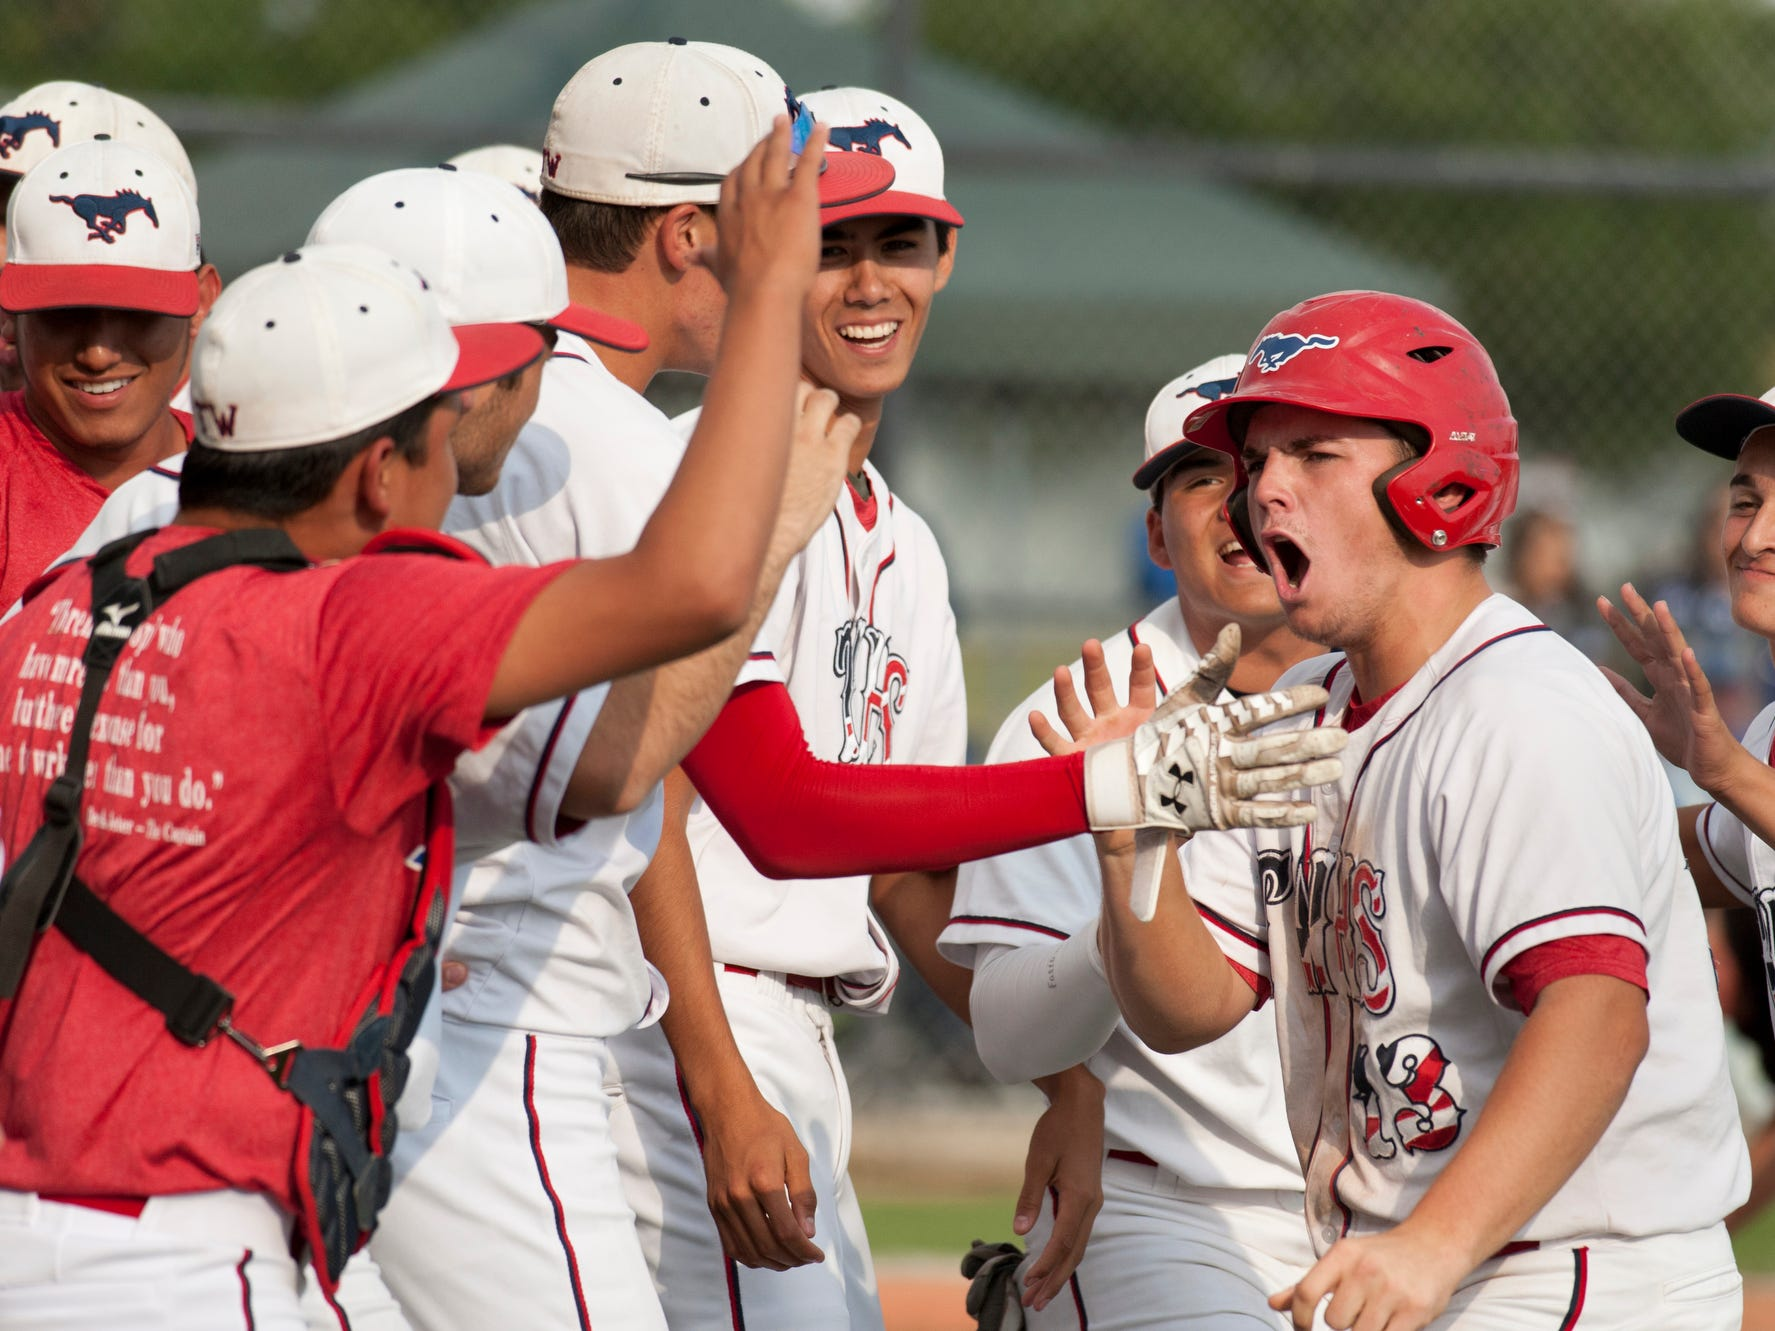 Tulare Western's Drew Muller and teammates celebrate a run generated by Blake Costa that put the Mustangs up 4-2 during Friday's Central Section playoff game.